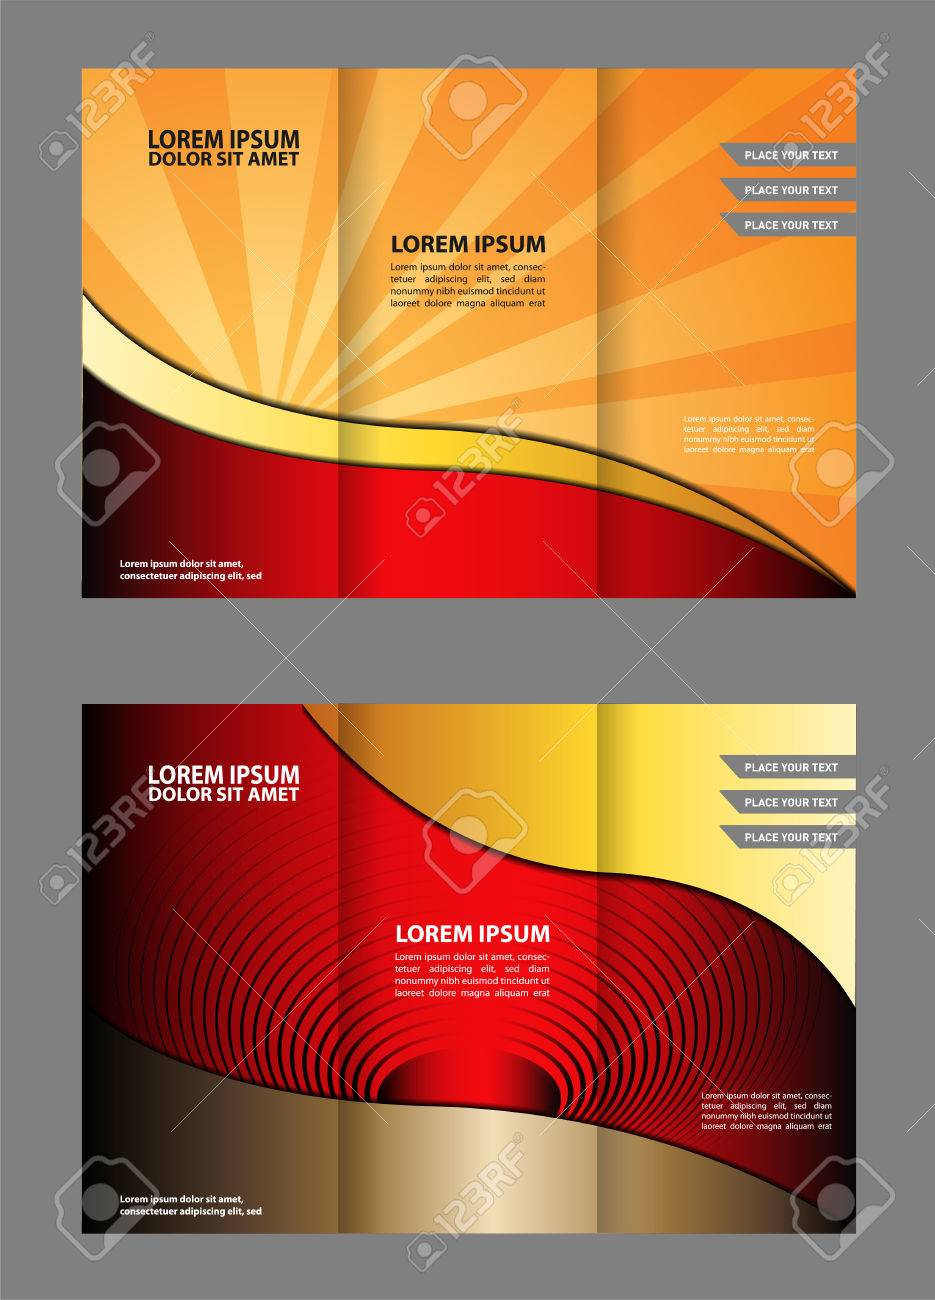 Trifold Brochure Template With Blue Design Of Polygons Editable - Editable brochure templates